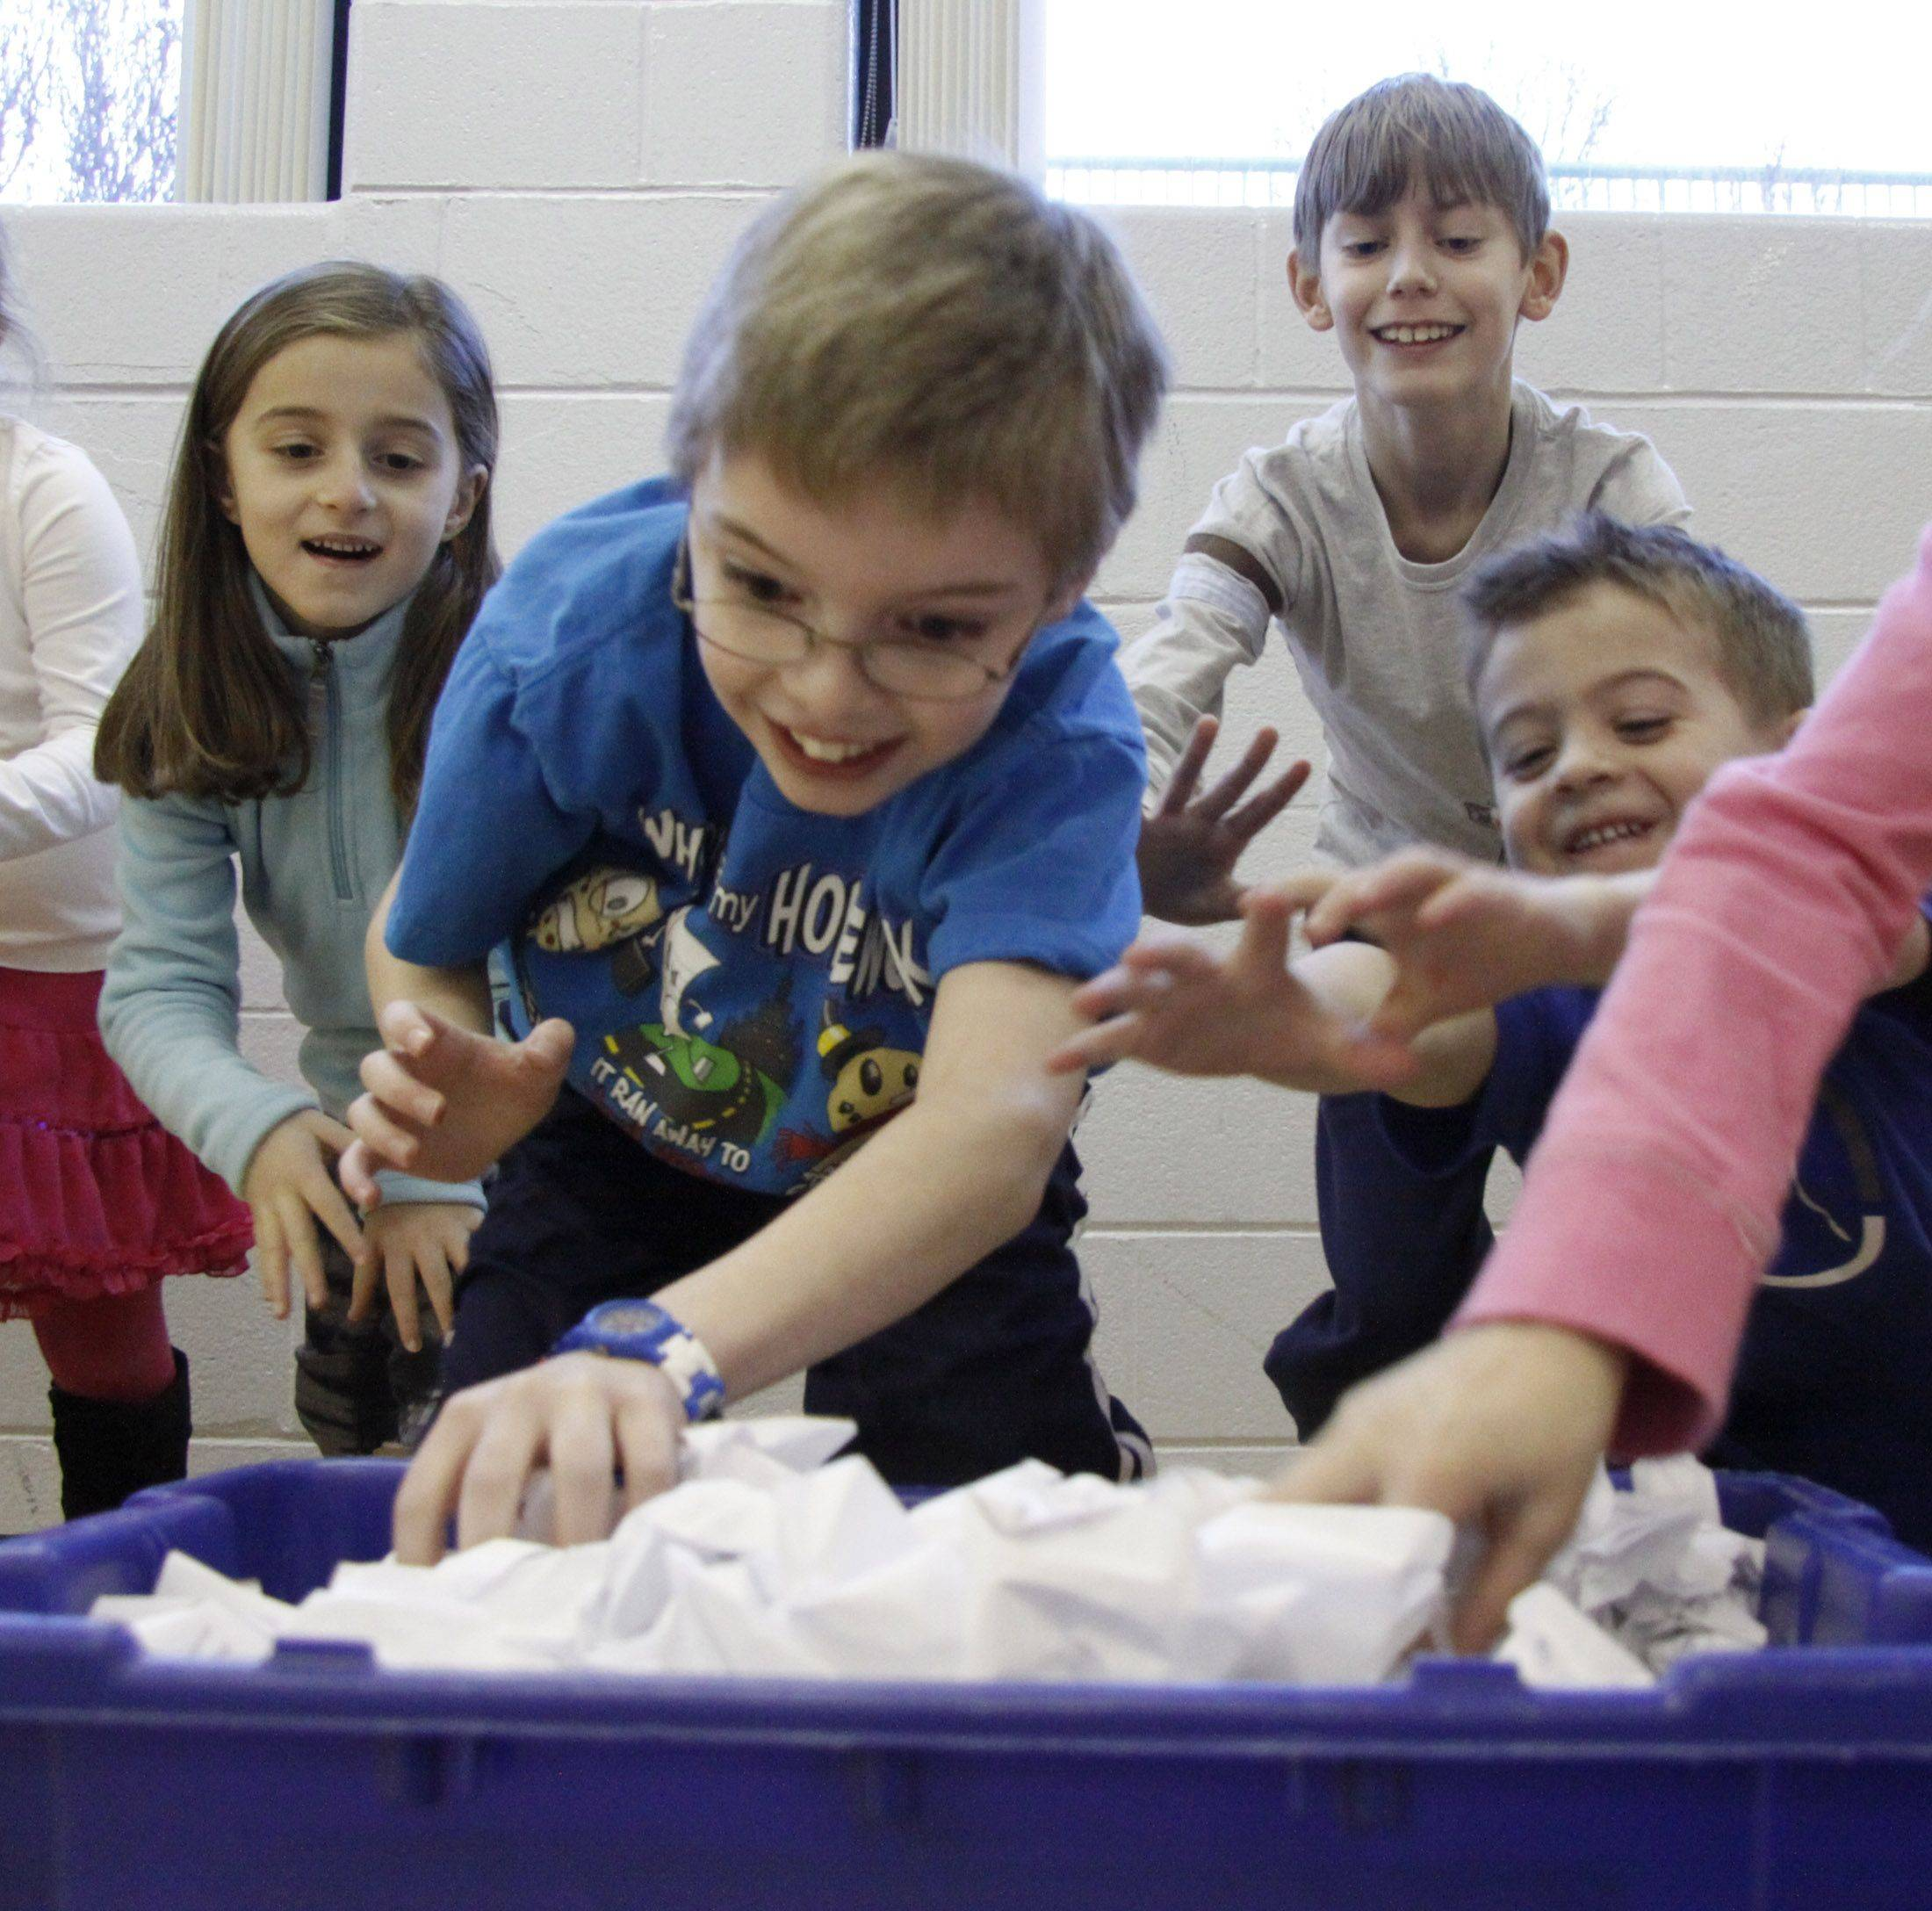 Anna Pahopos, 6, left, Kyle Doogan, 9, Cory Hone, 9, and Nicholas Gironda, right, run to get the snowballs, made of crumpled paper, to throw at the other team at the Indoor Snow Day Saturday at the Clauss Recreation Center in Roselle.